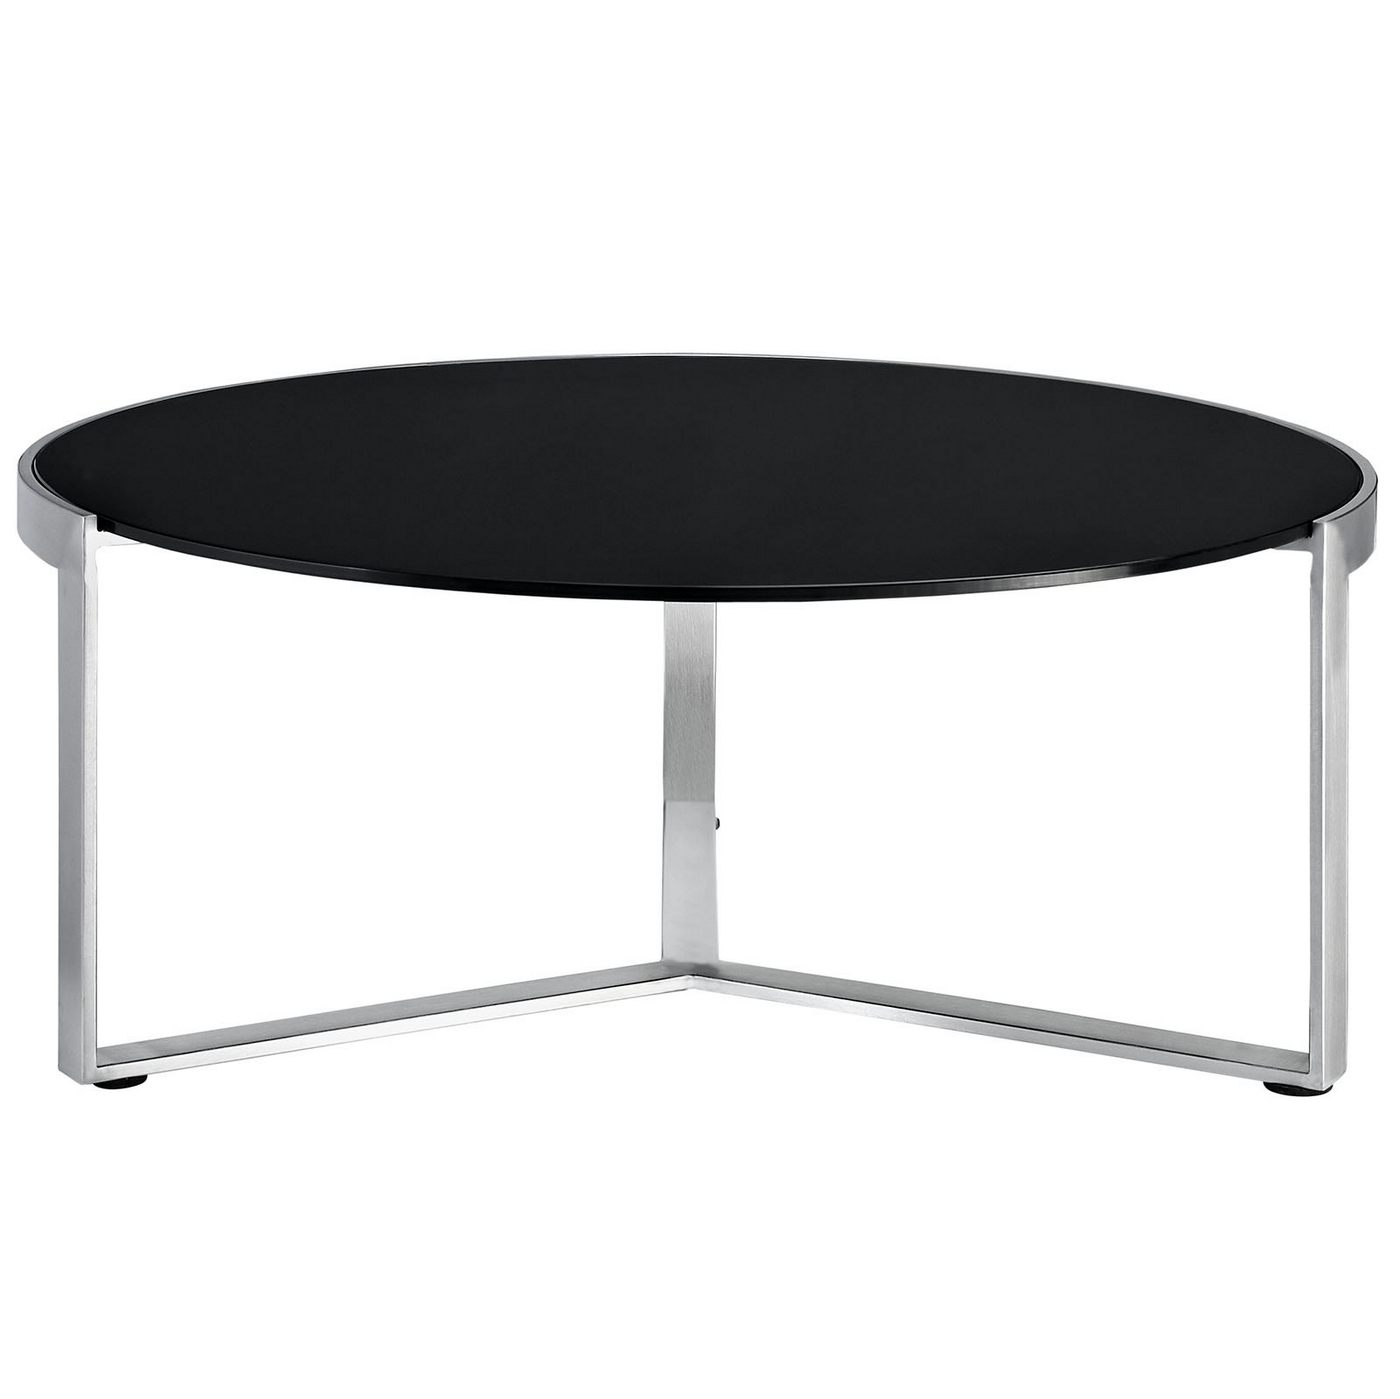 Industrial Glass Top Round Coffee Table W Stainless Steel Base Black